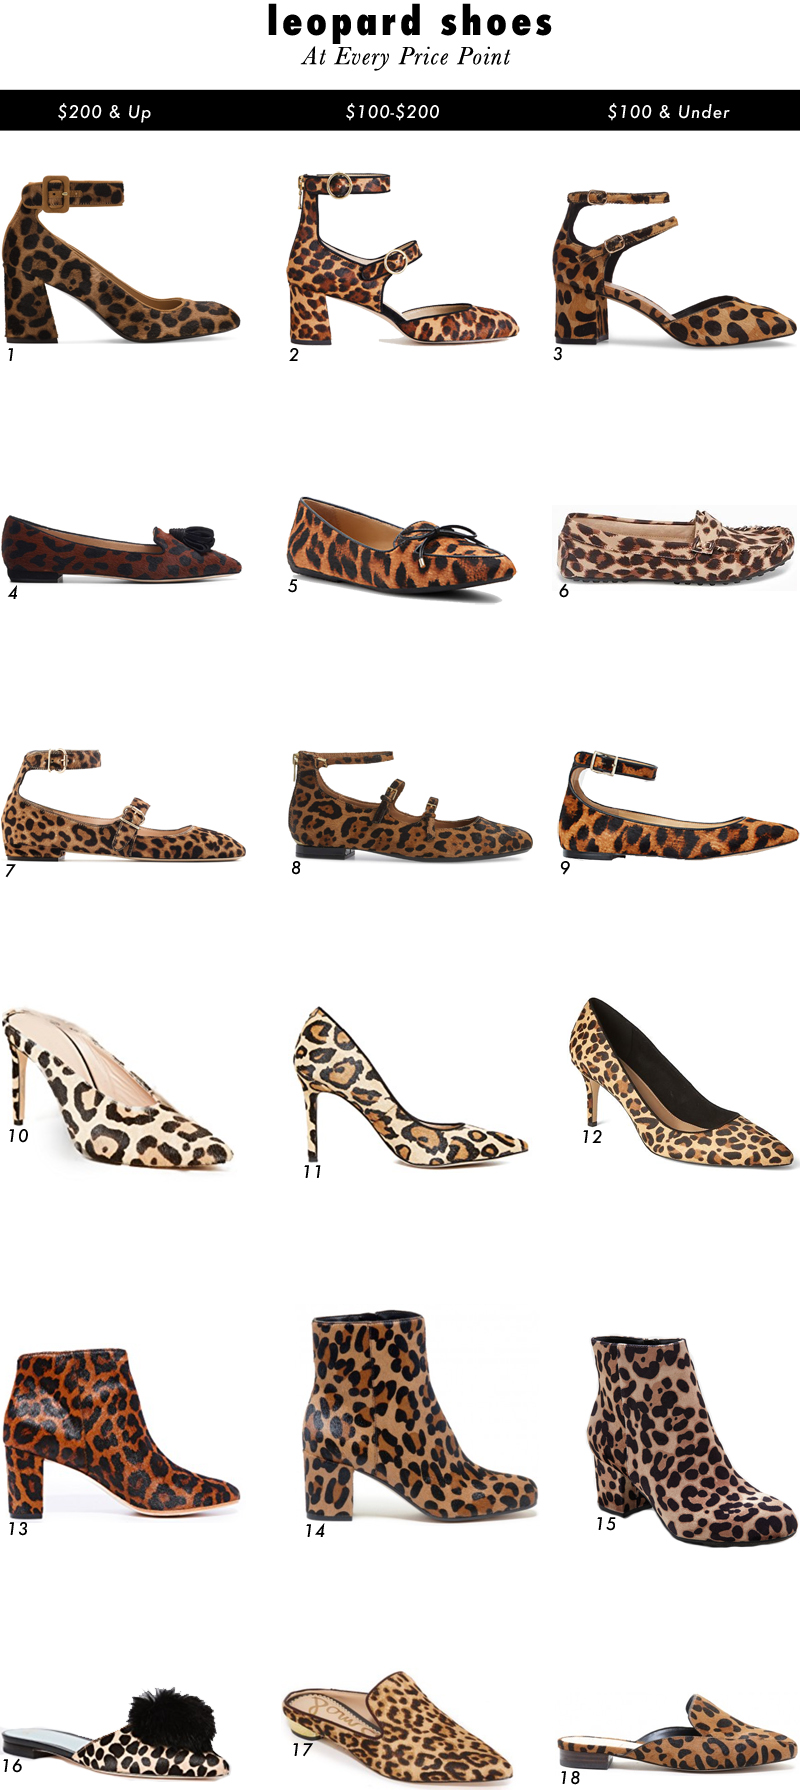 Leopard Shoes 2017 updated